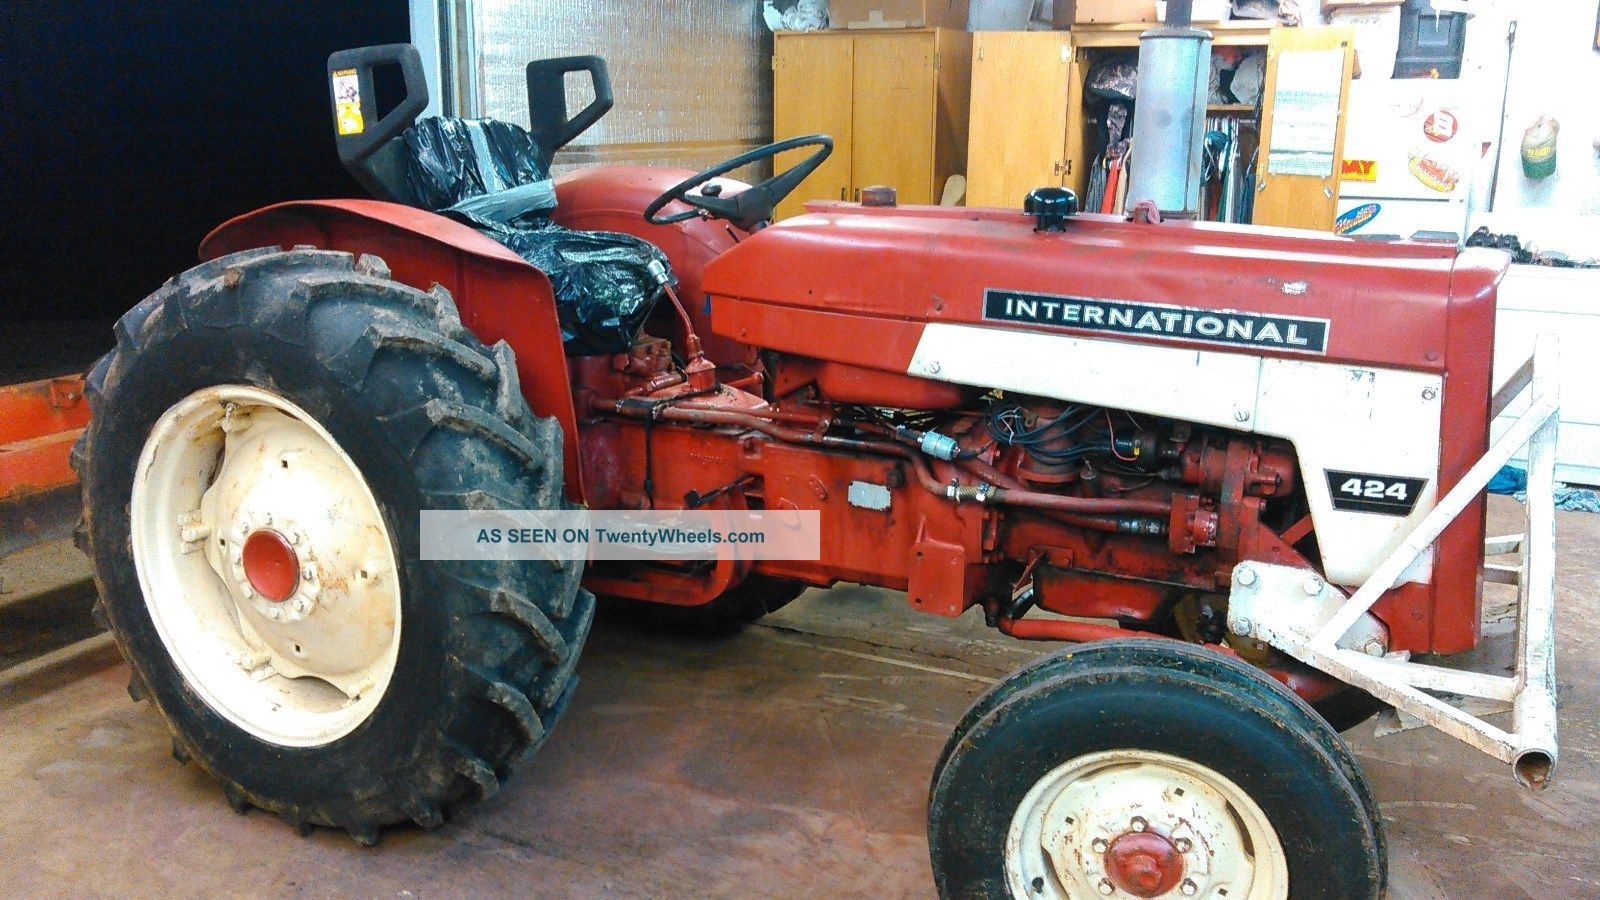 International 244 Tractor Diagram : International tractor wiring diagram